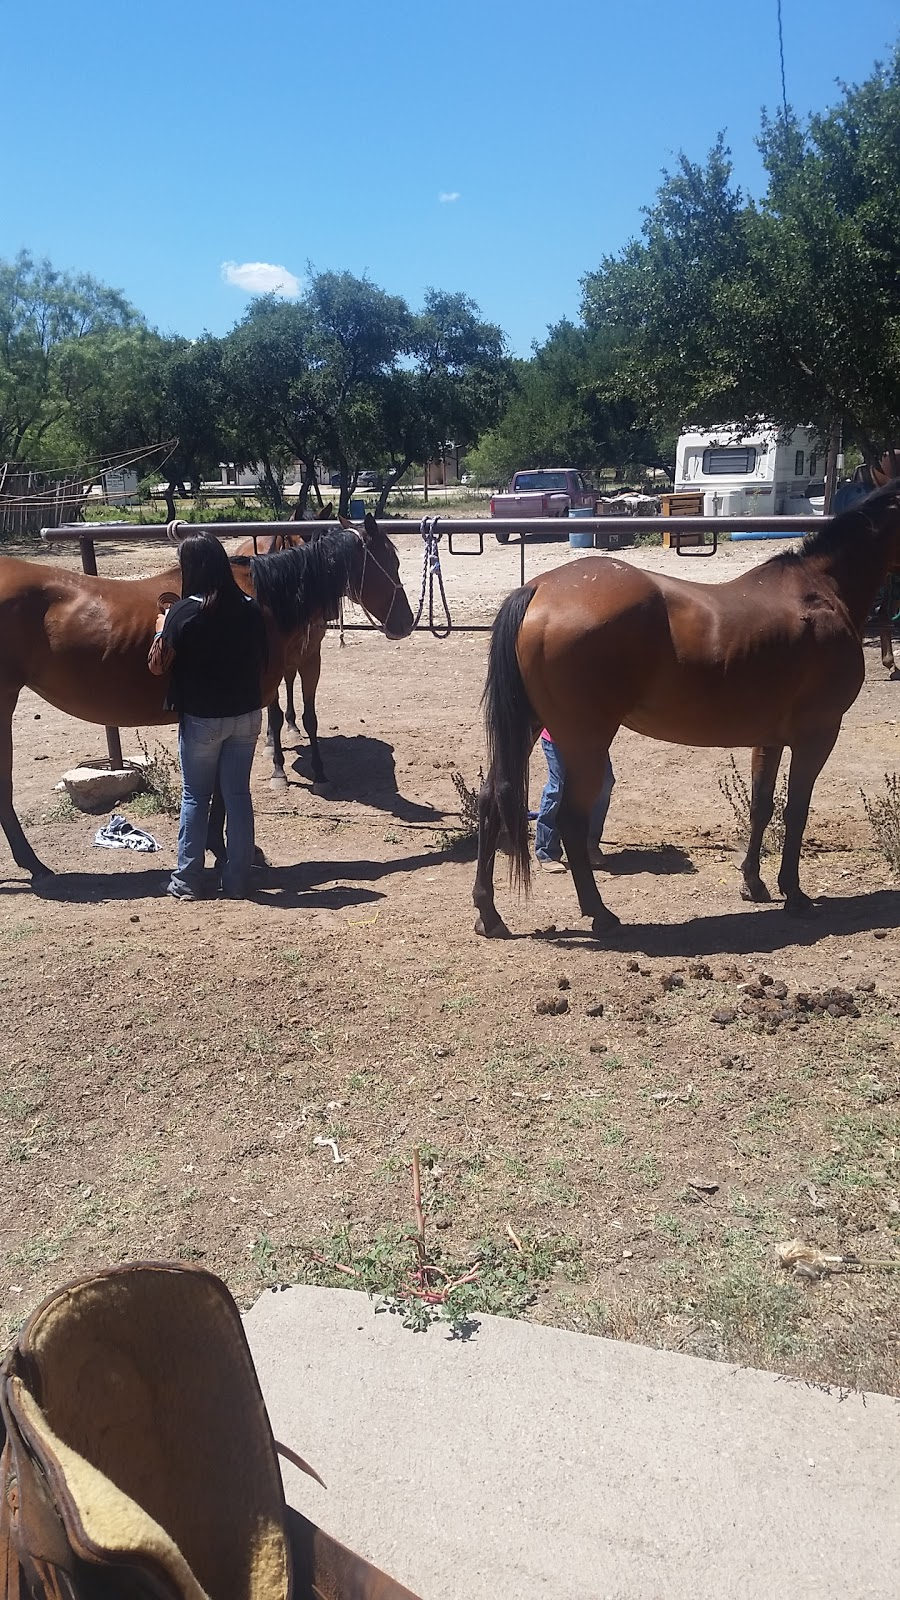 Adams Ranch Quarterhorses - travel agency  | Photo 1 of 6 | Address: 20791 US-277, Christoval, TX 76935, USA | Phone: (325) 277-4151